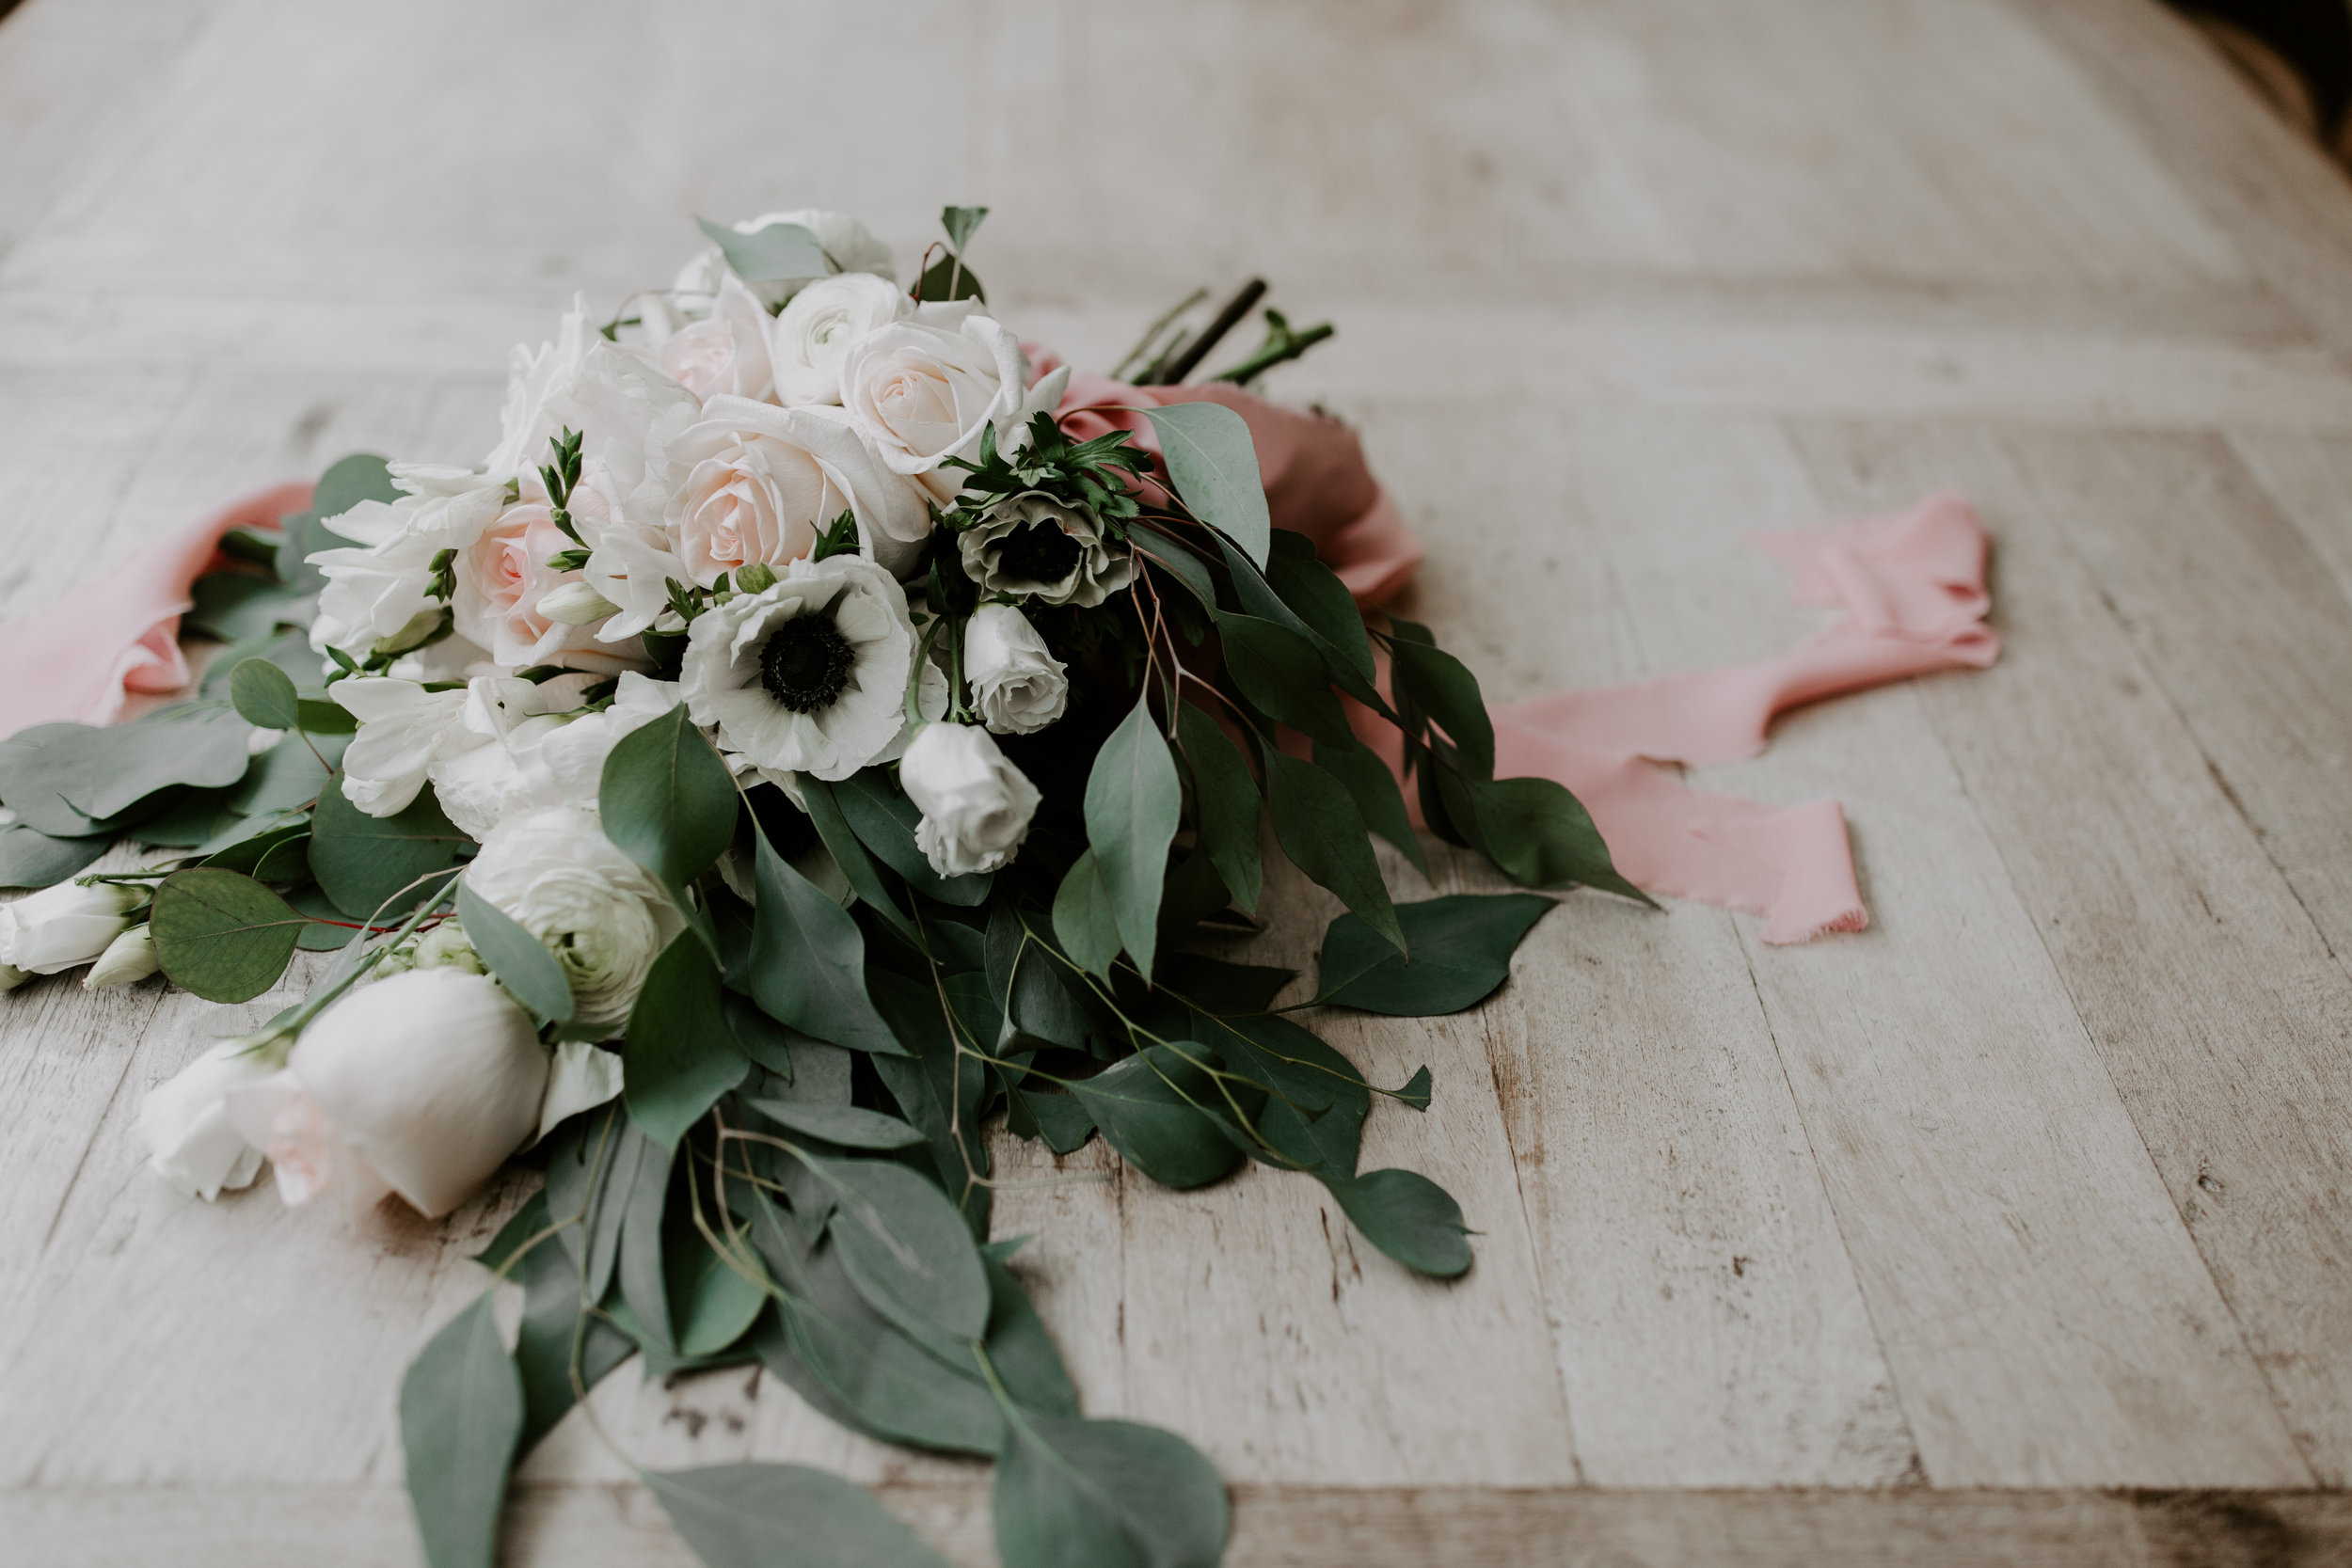 Rustic Bloom Photography   Rustic Bouquet Inspiration